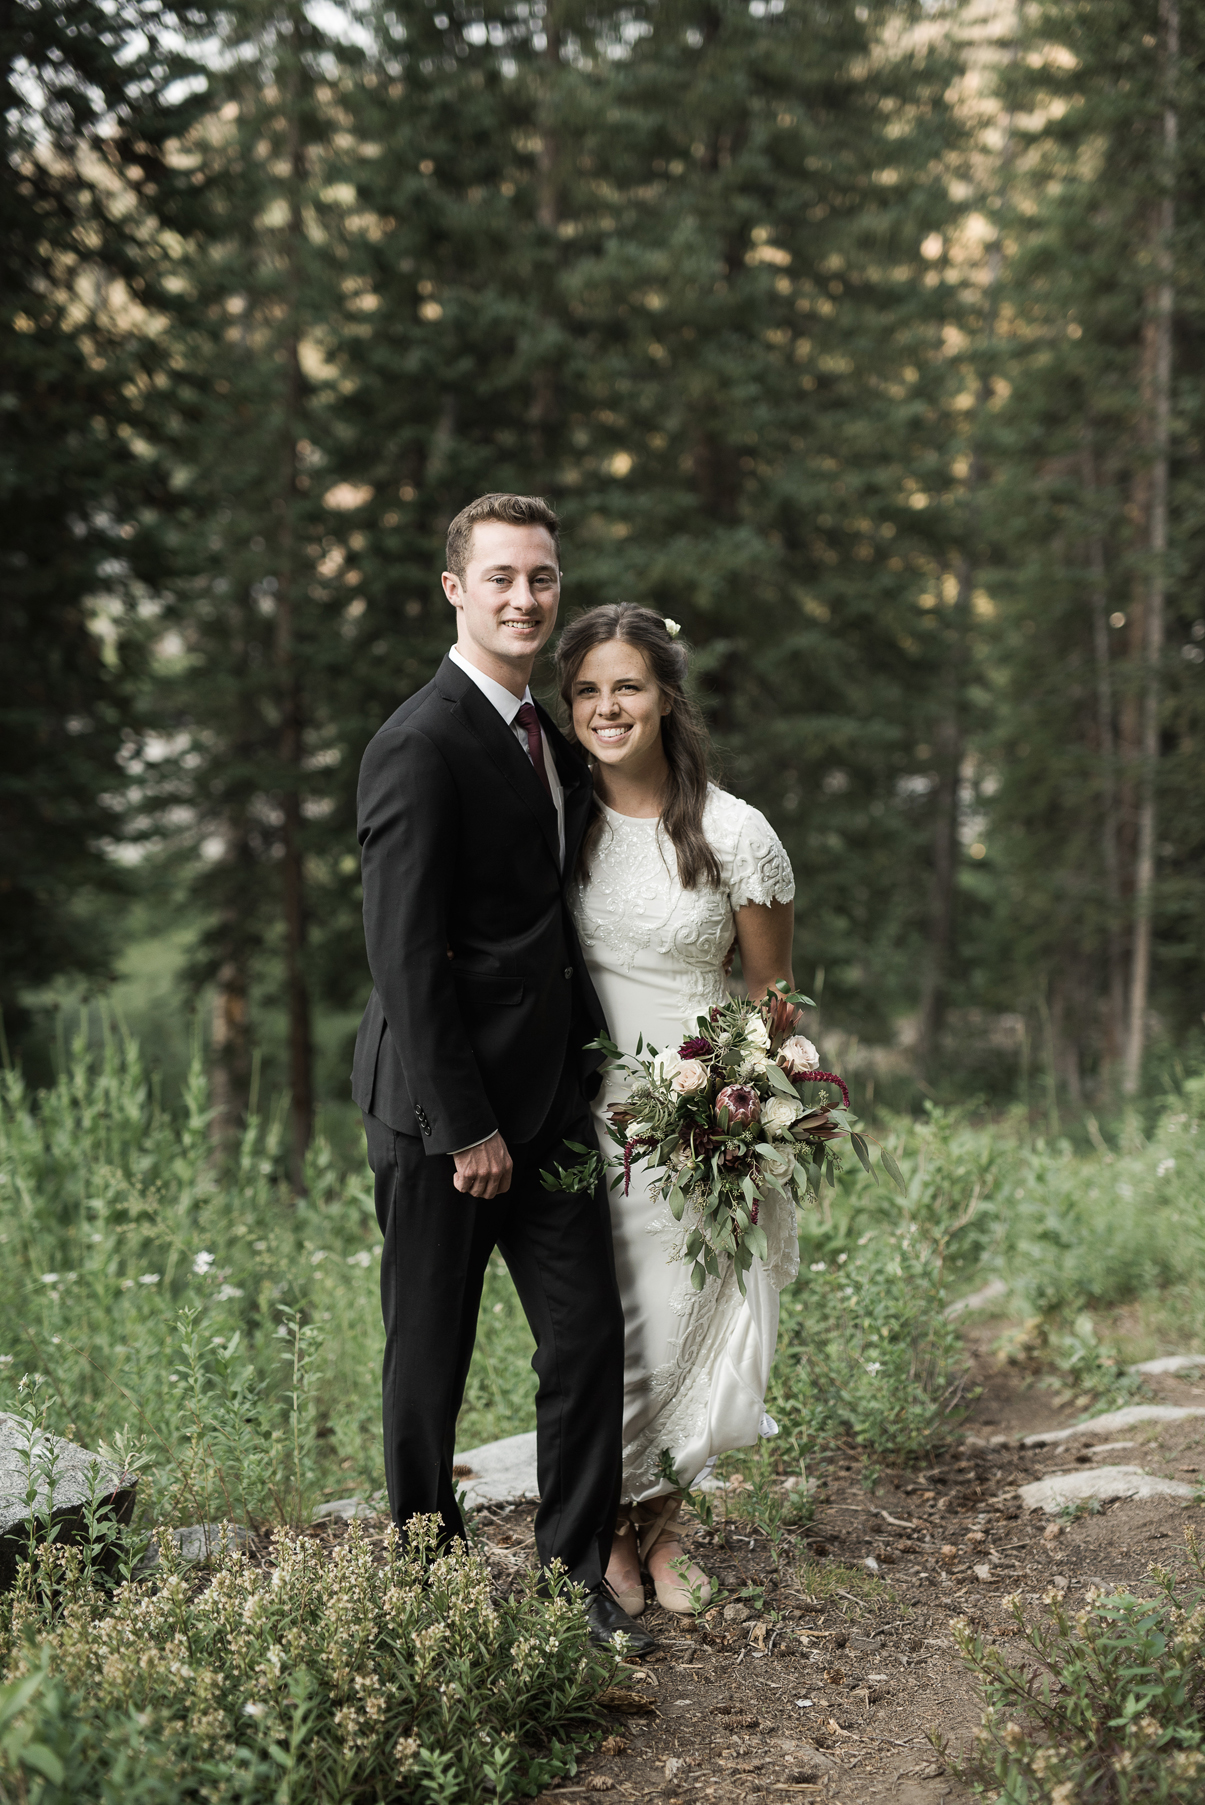 posed portrait of bride and groom together